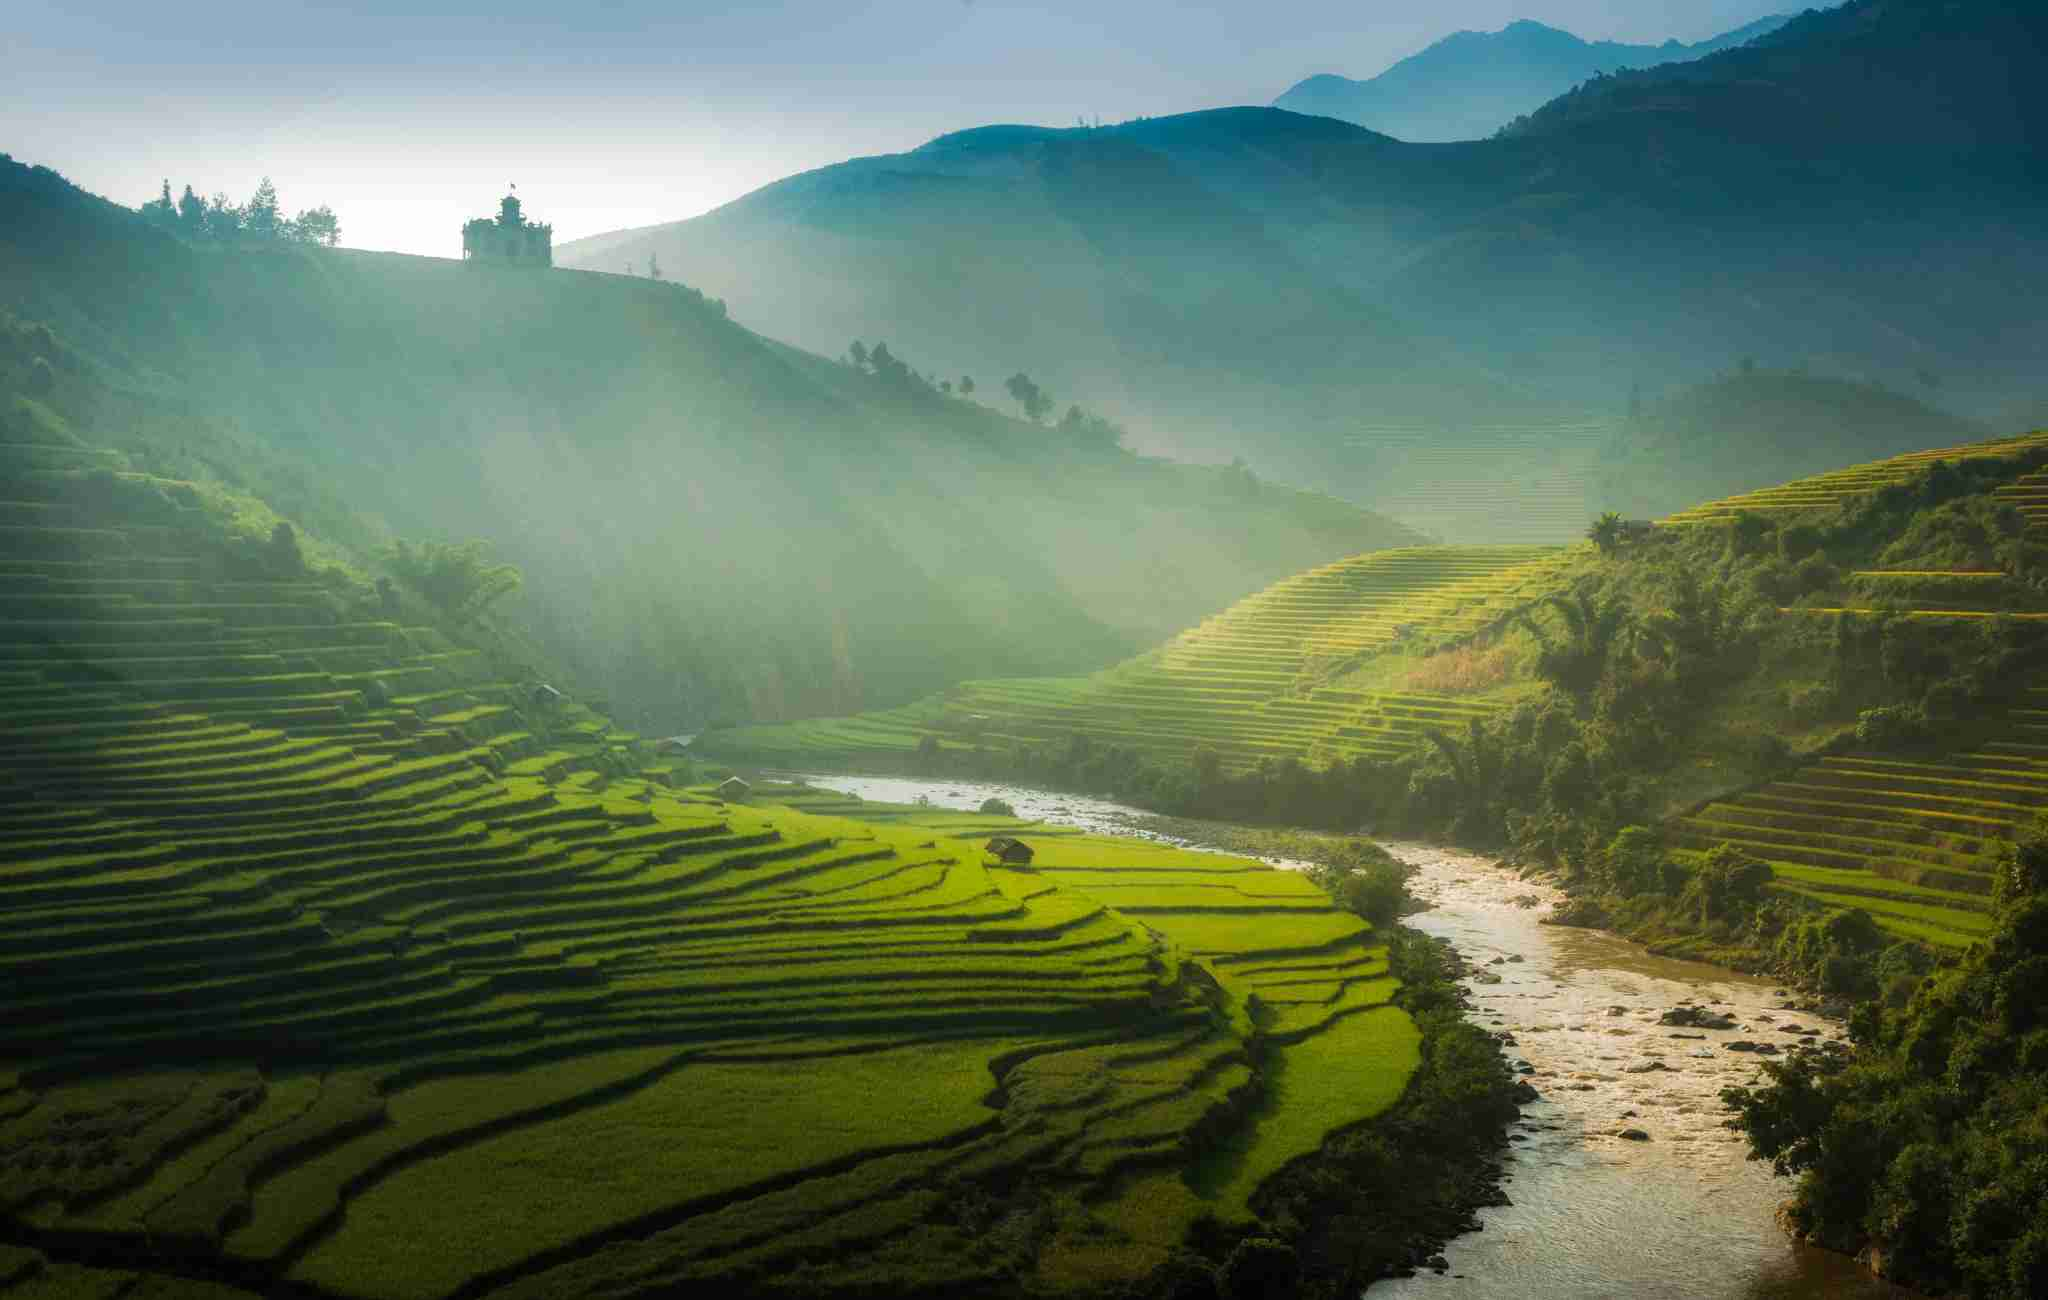 The great house on the hills, Mu Cang Chai, Yen Bai, Vietnam (Photo by Pathompat Meelarp/Getty Images)